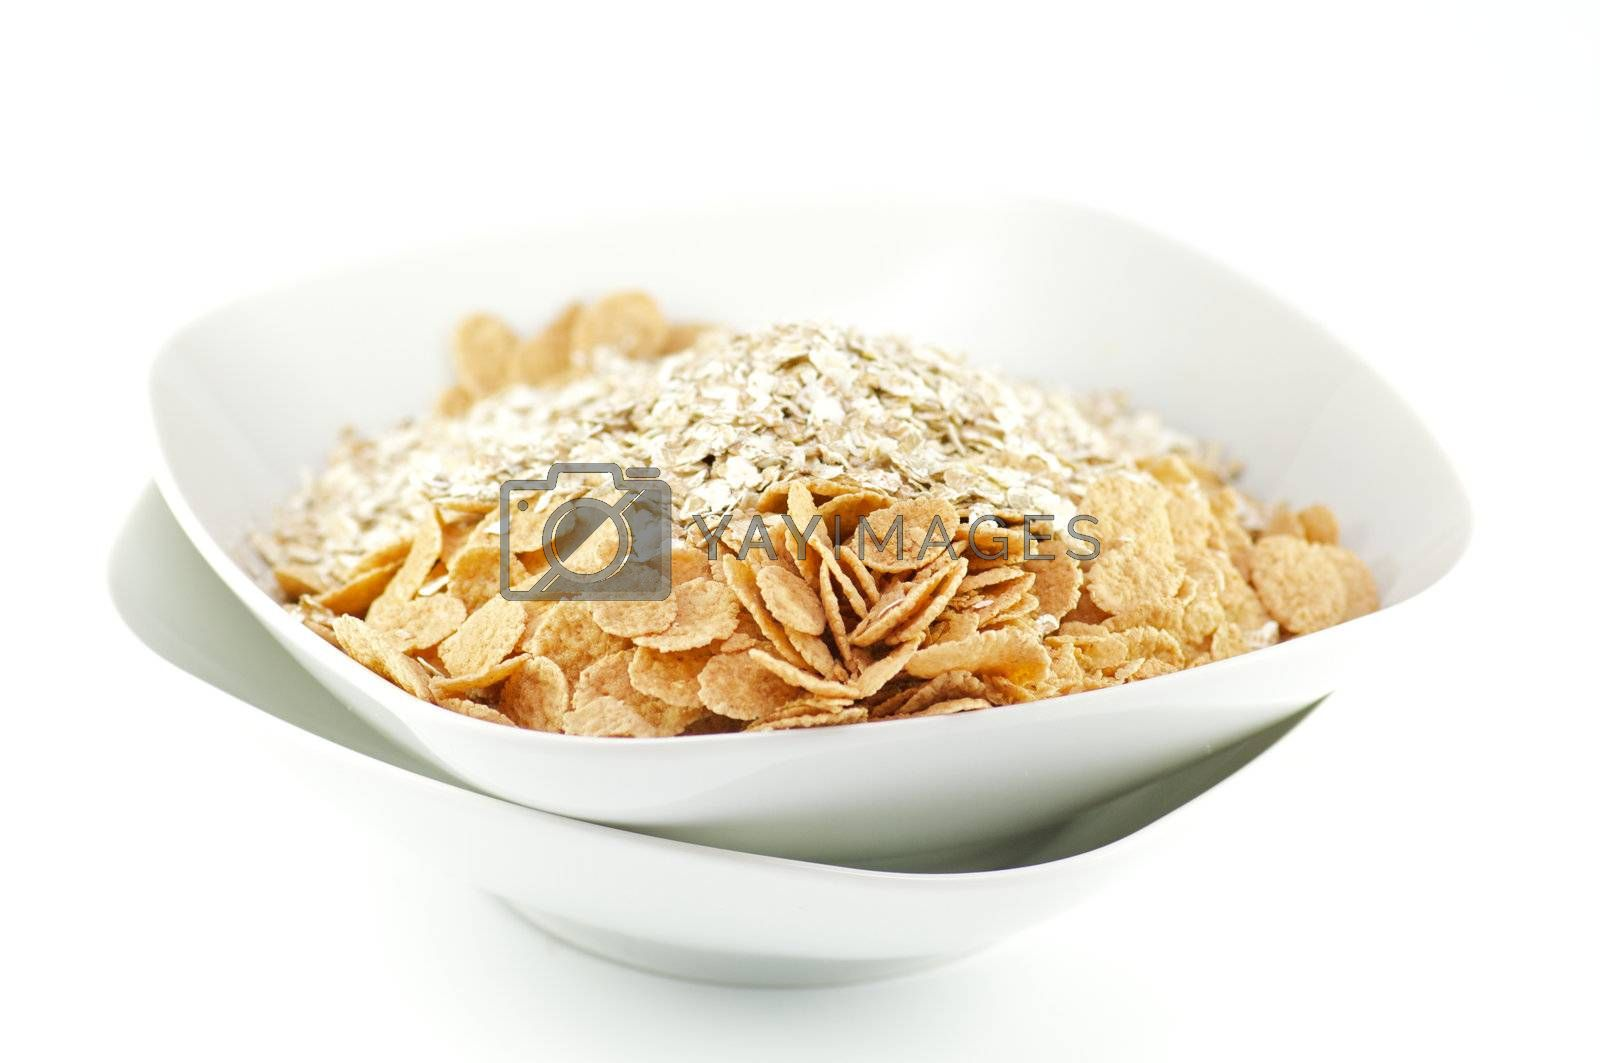 Muesli and corn flakes in white plates on white background